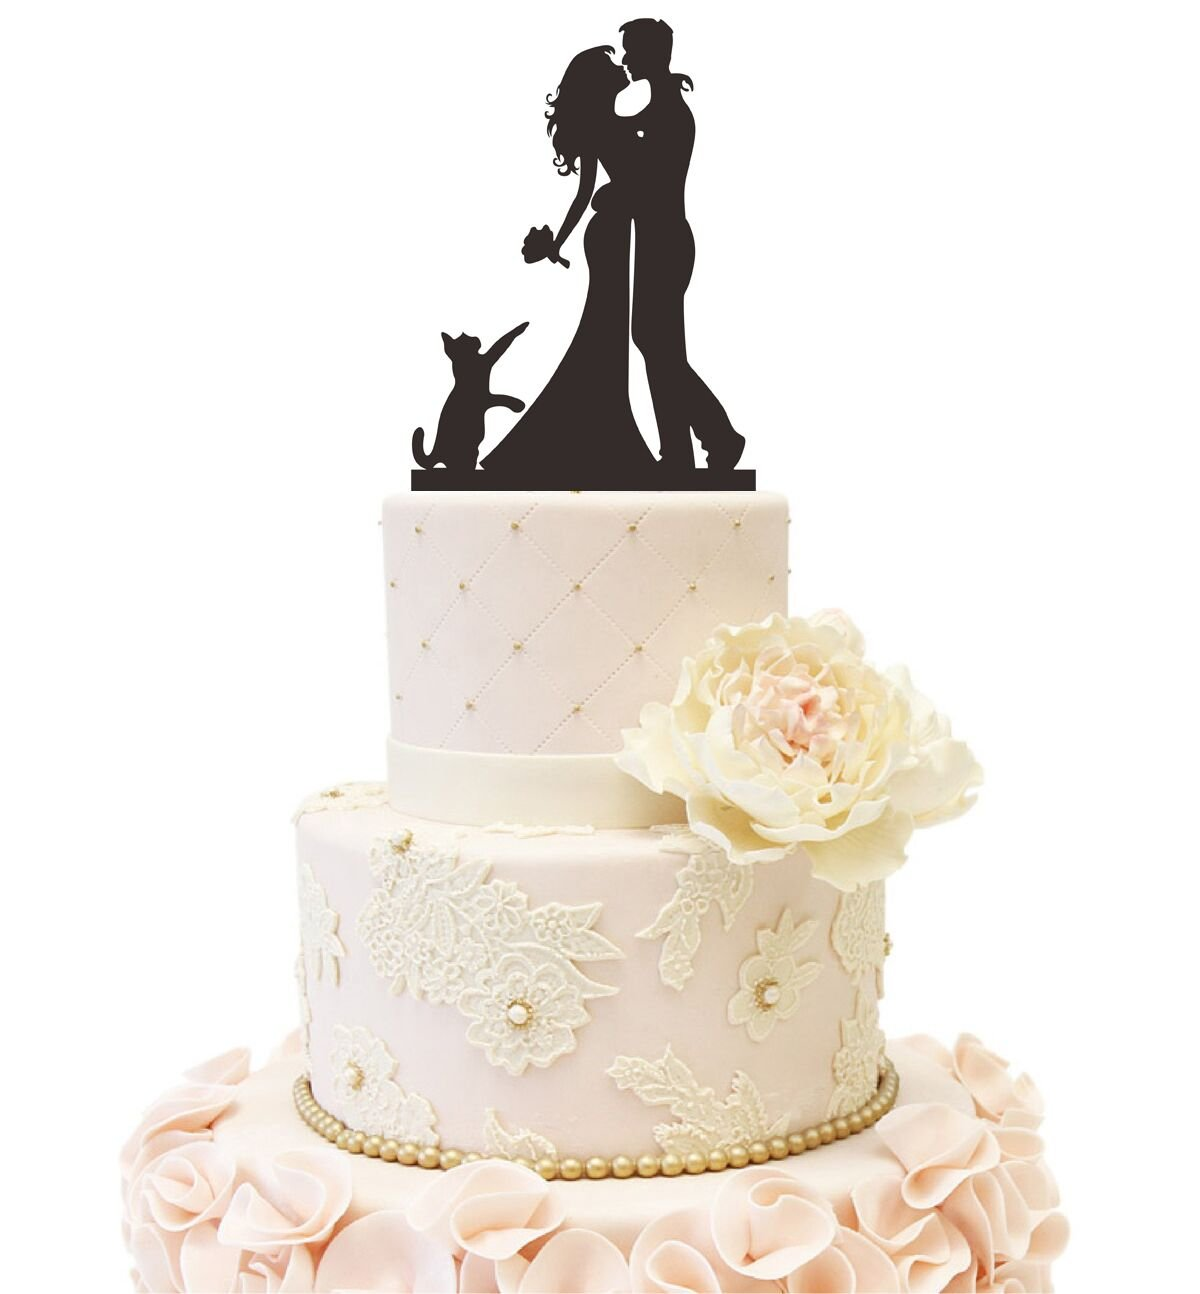 Uniquemystyle Glitter Silver Wedding Anniverary Family Cake Topper Bride Groom with One Dog A Dog